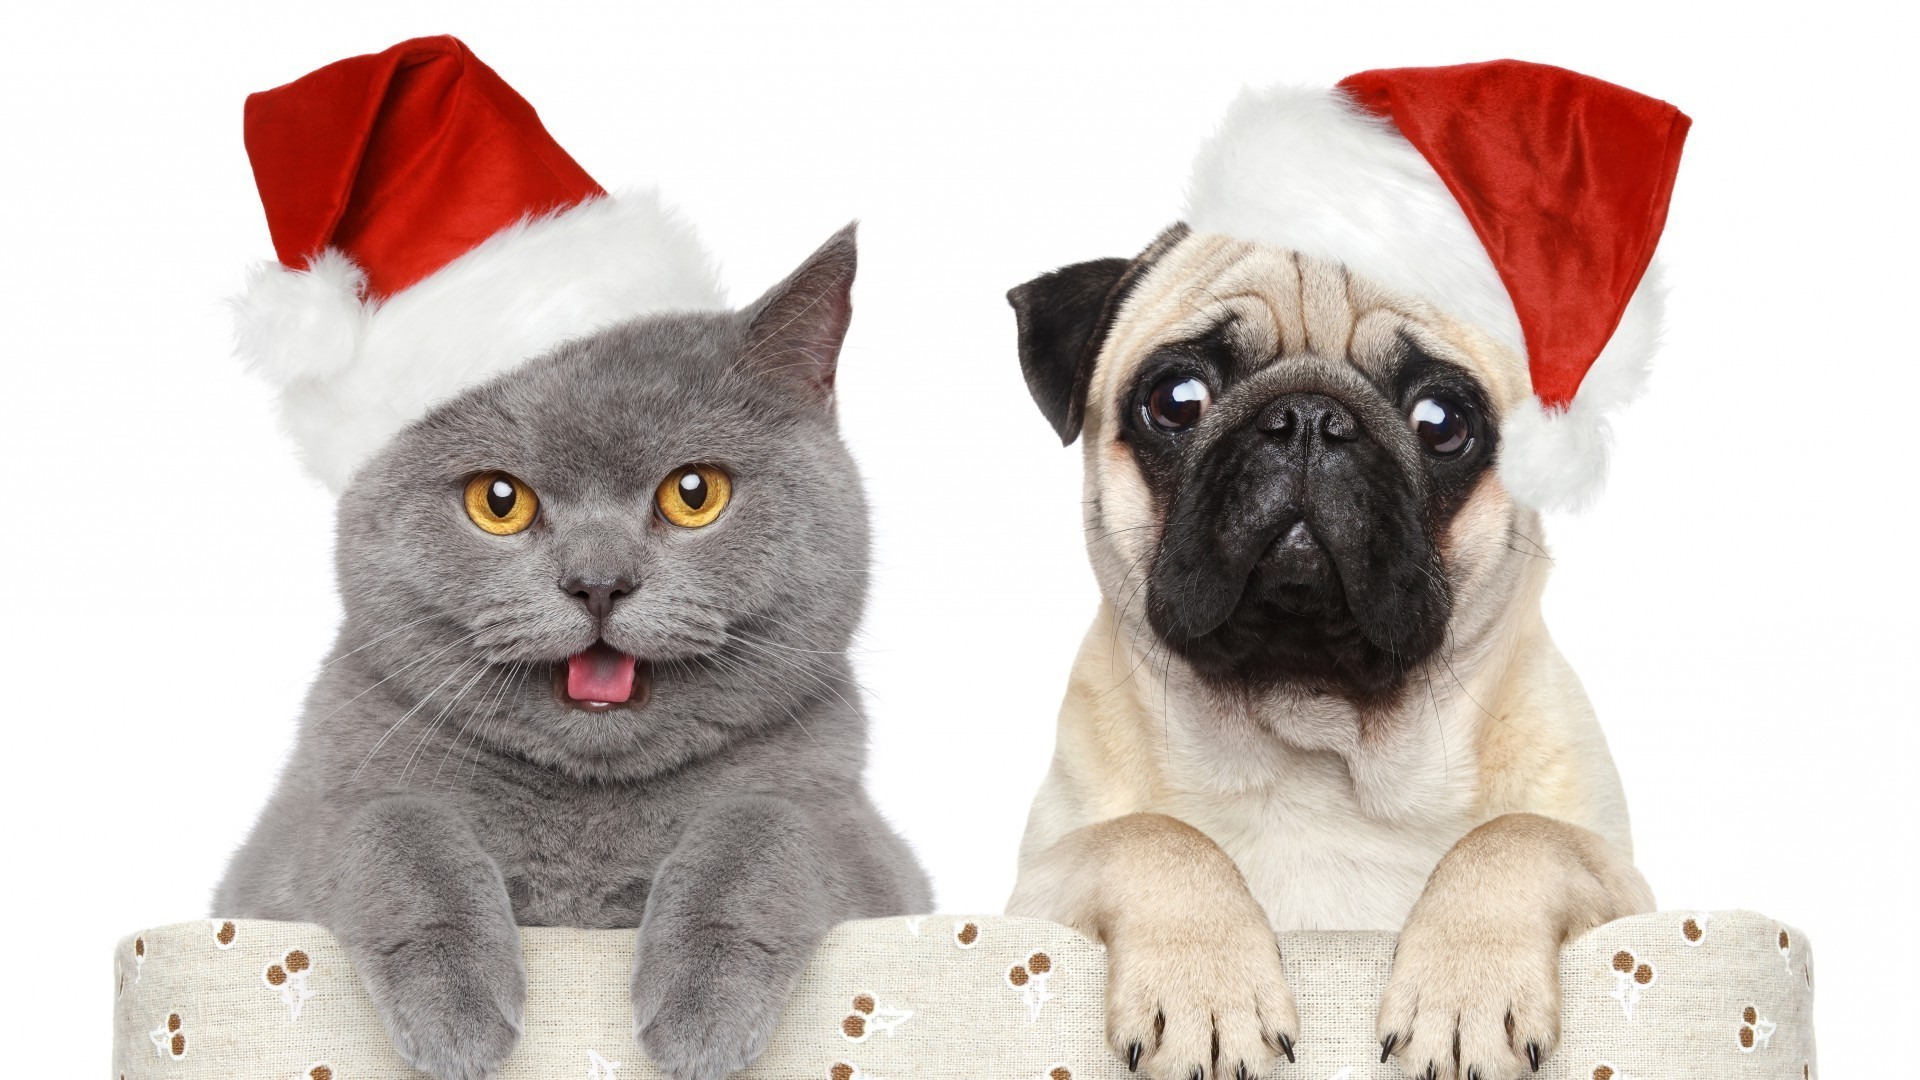 cat and dog meet the new year android wallpapers for free